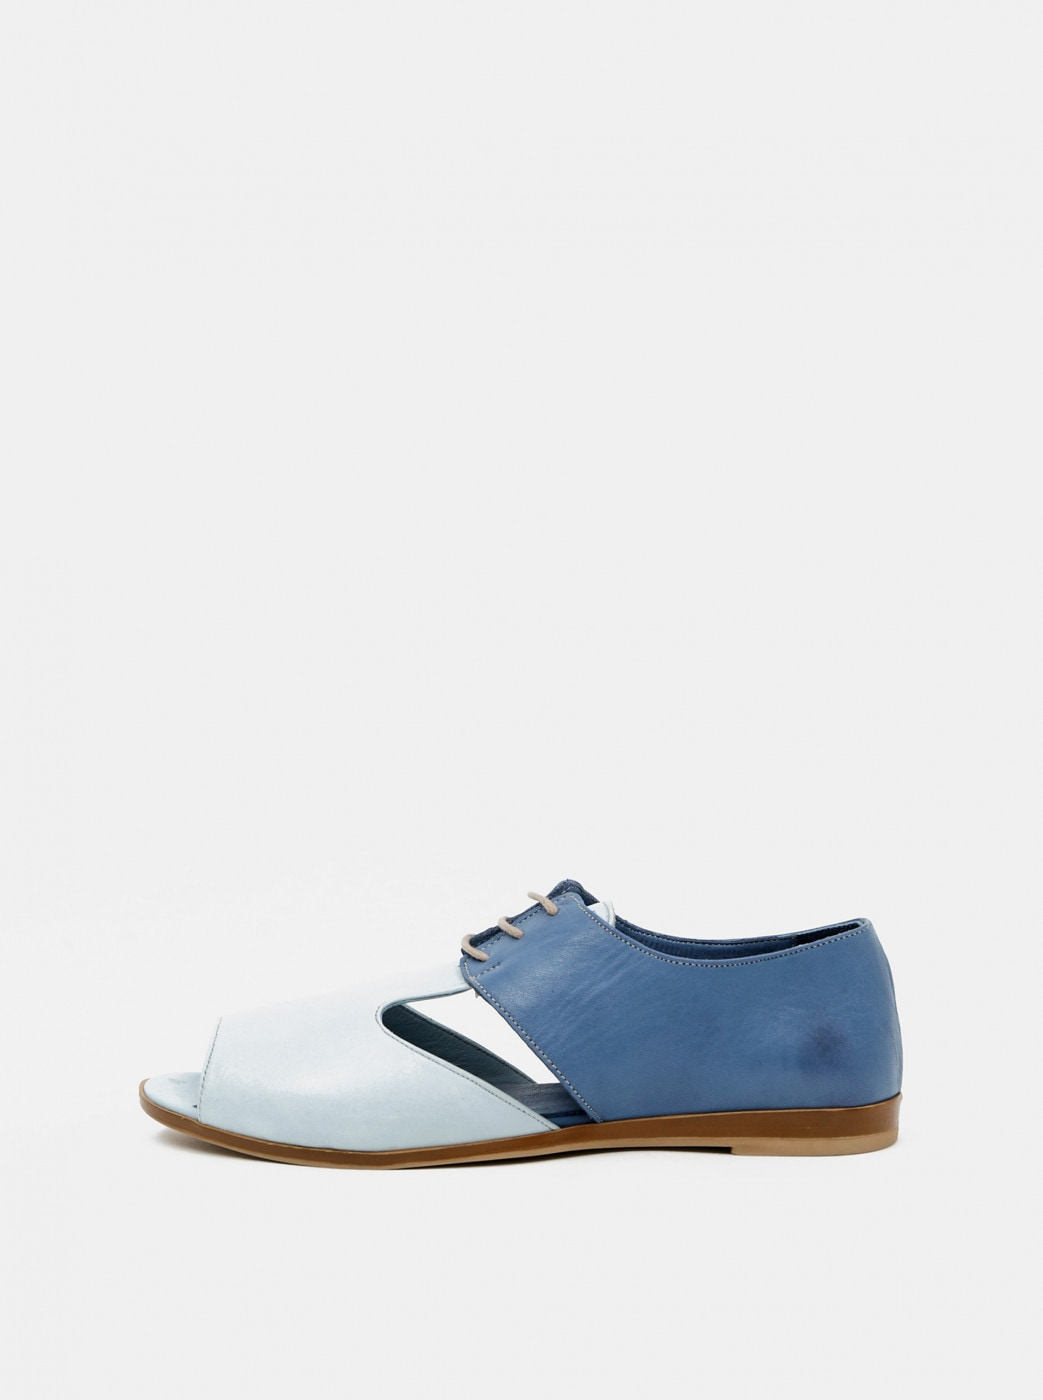 Wild Women's Leather Shoes